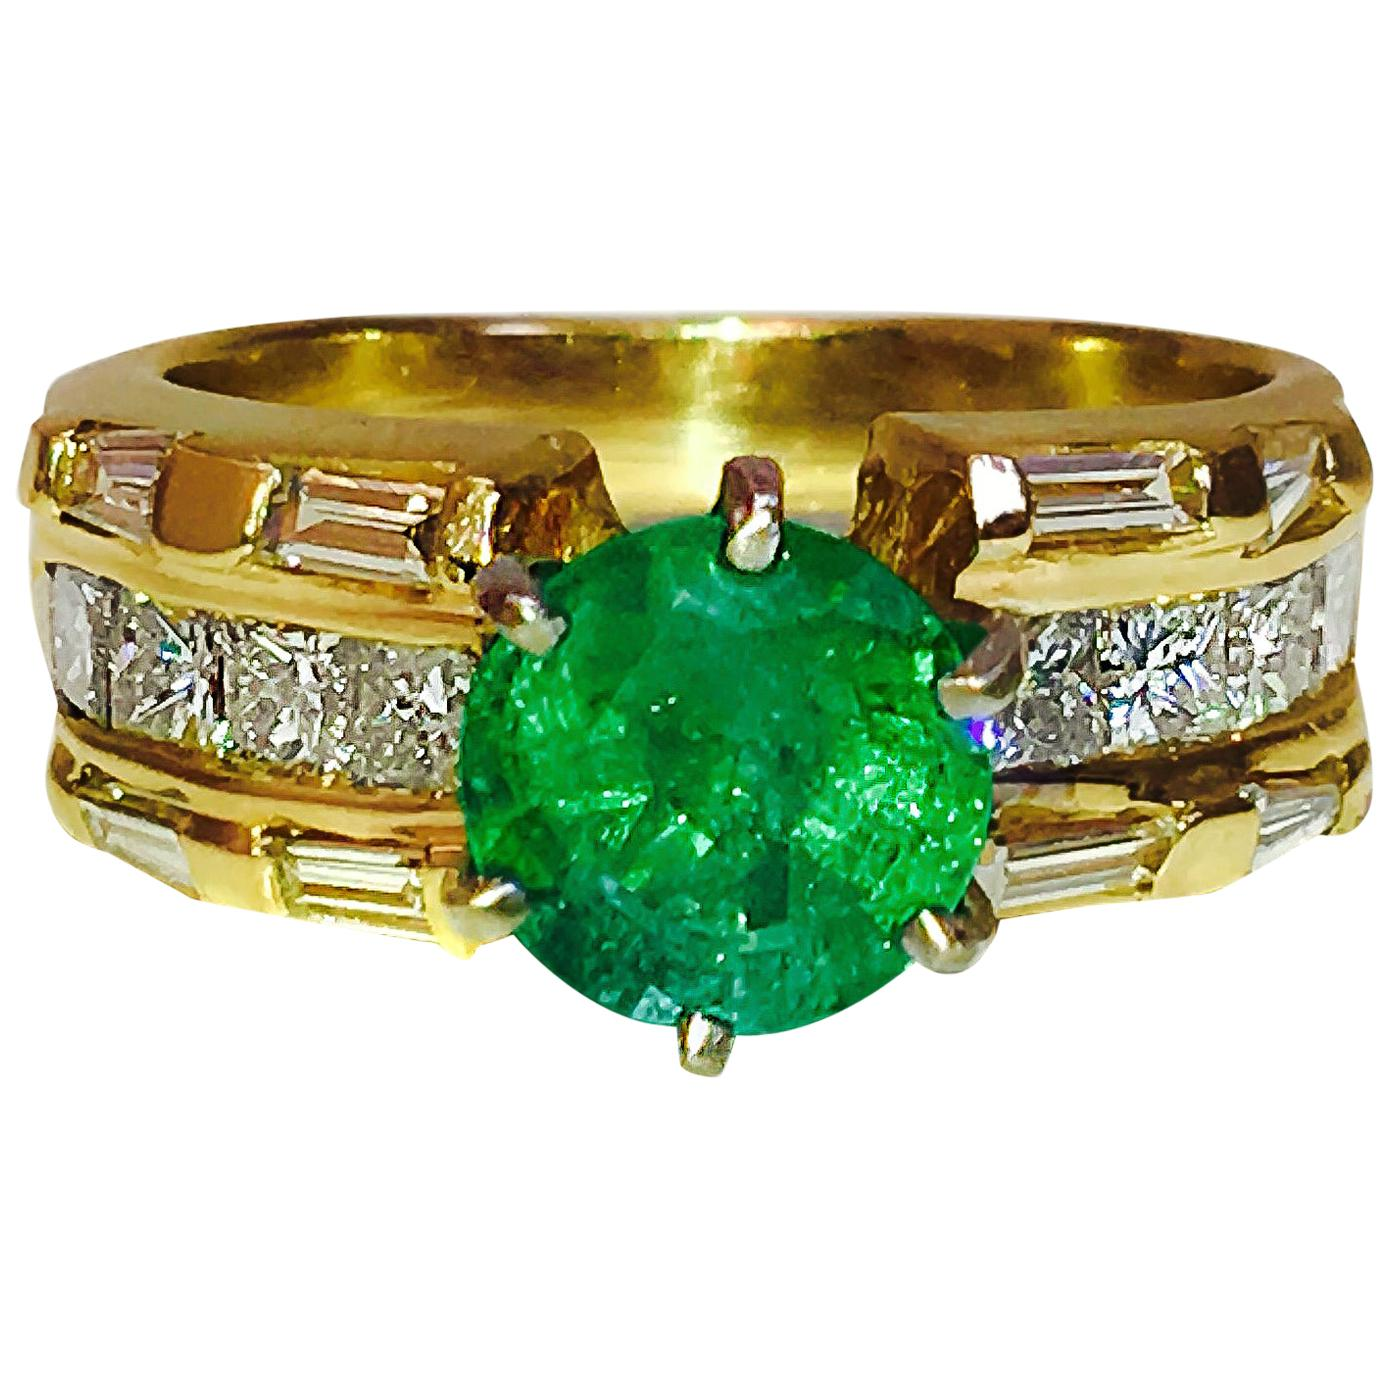 GIA Certified 4.85 Carats Vintage Cocktail Emerald Diamond Engagement Ring